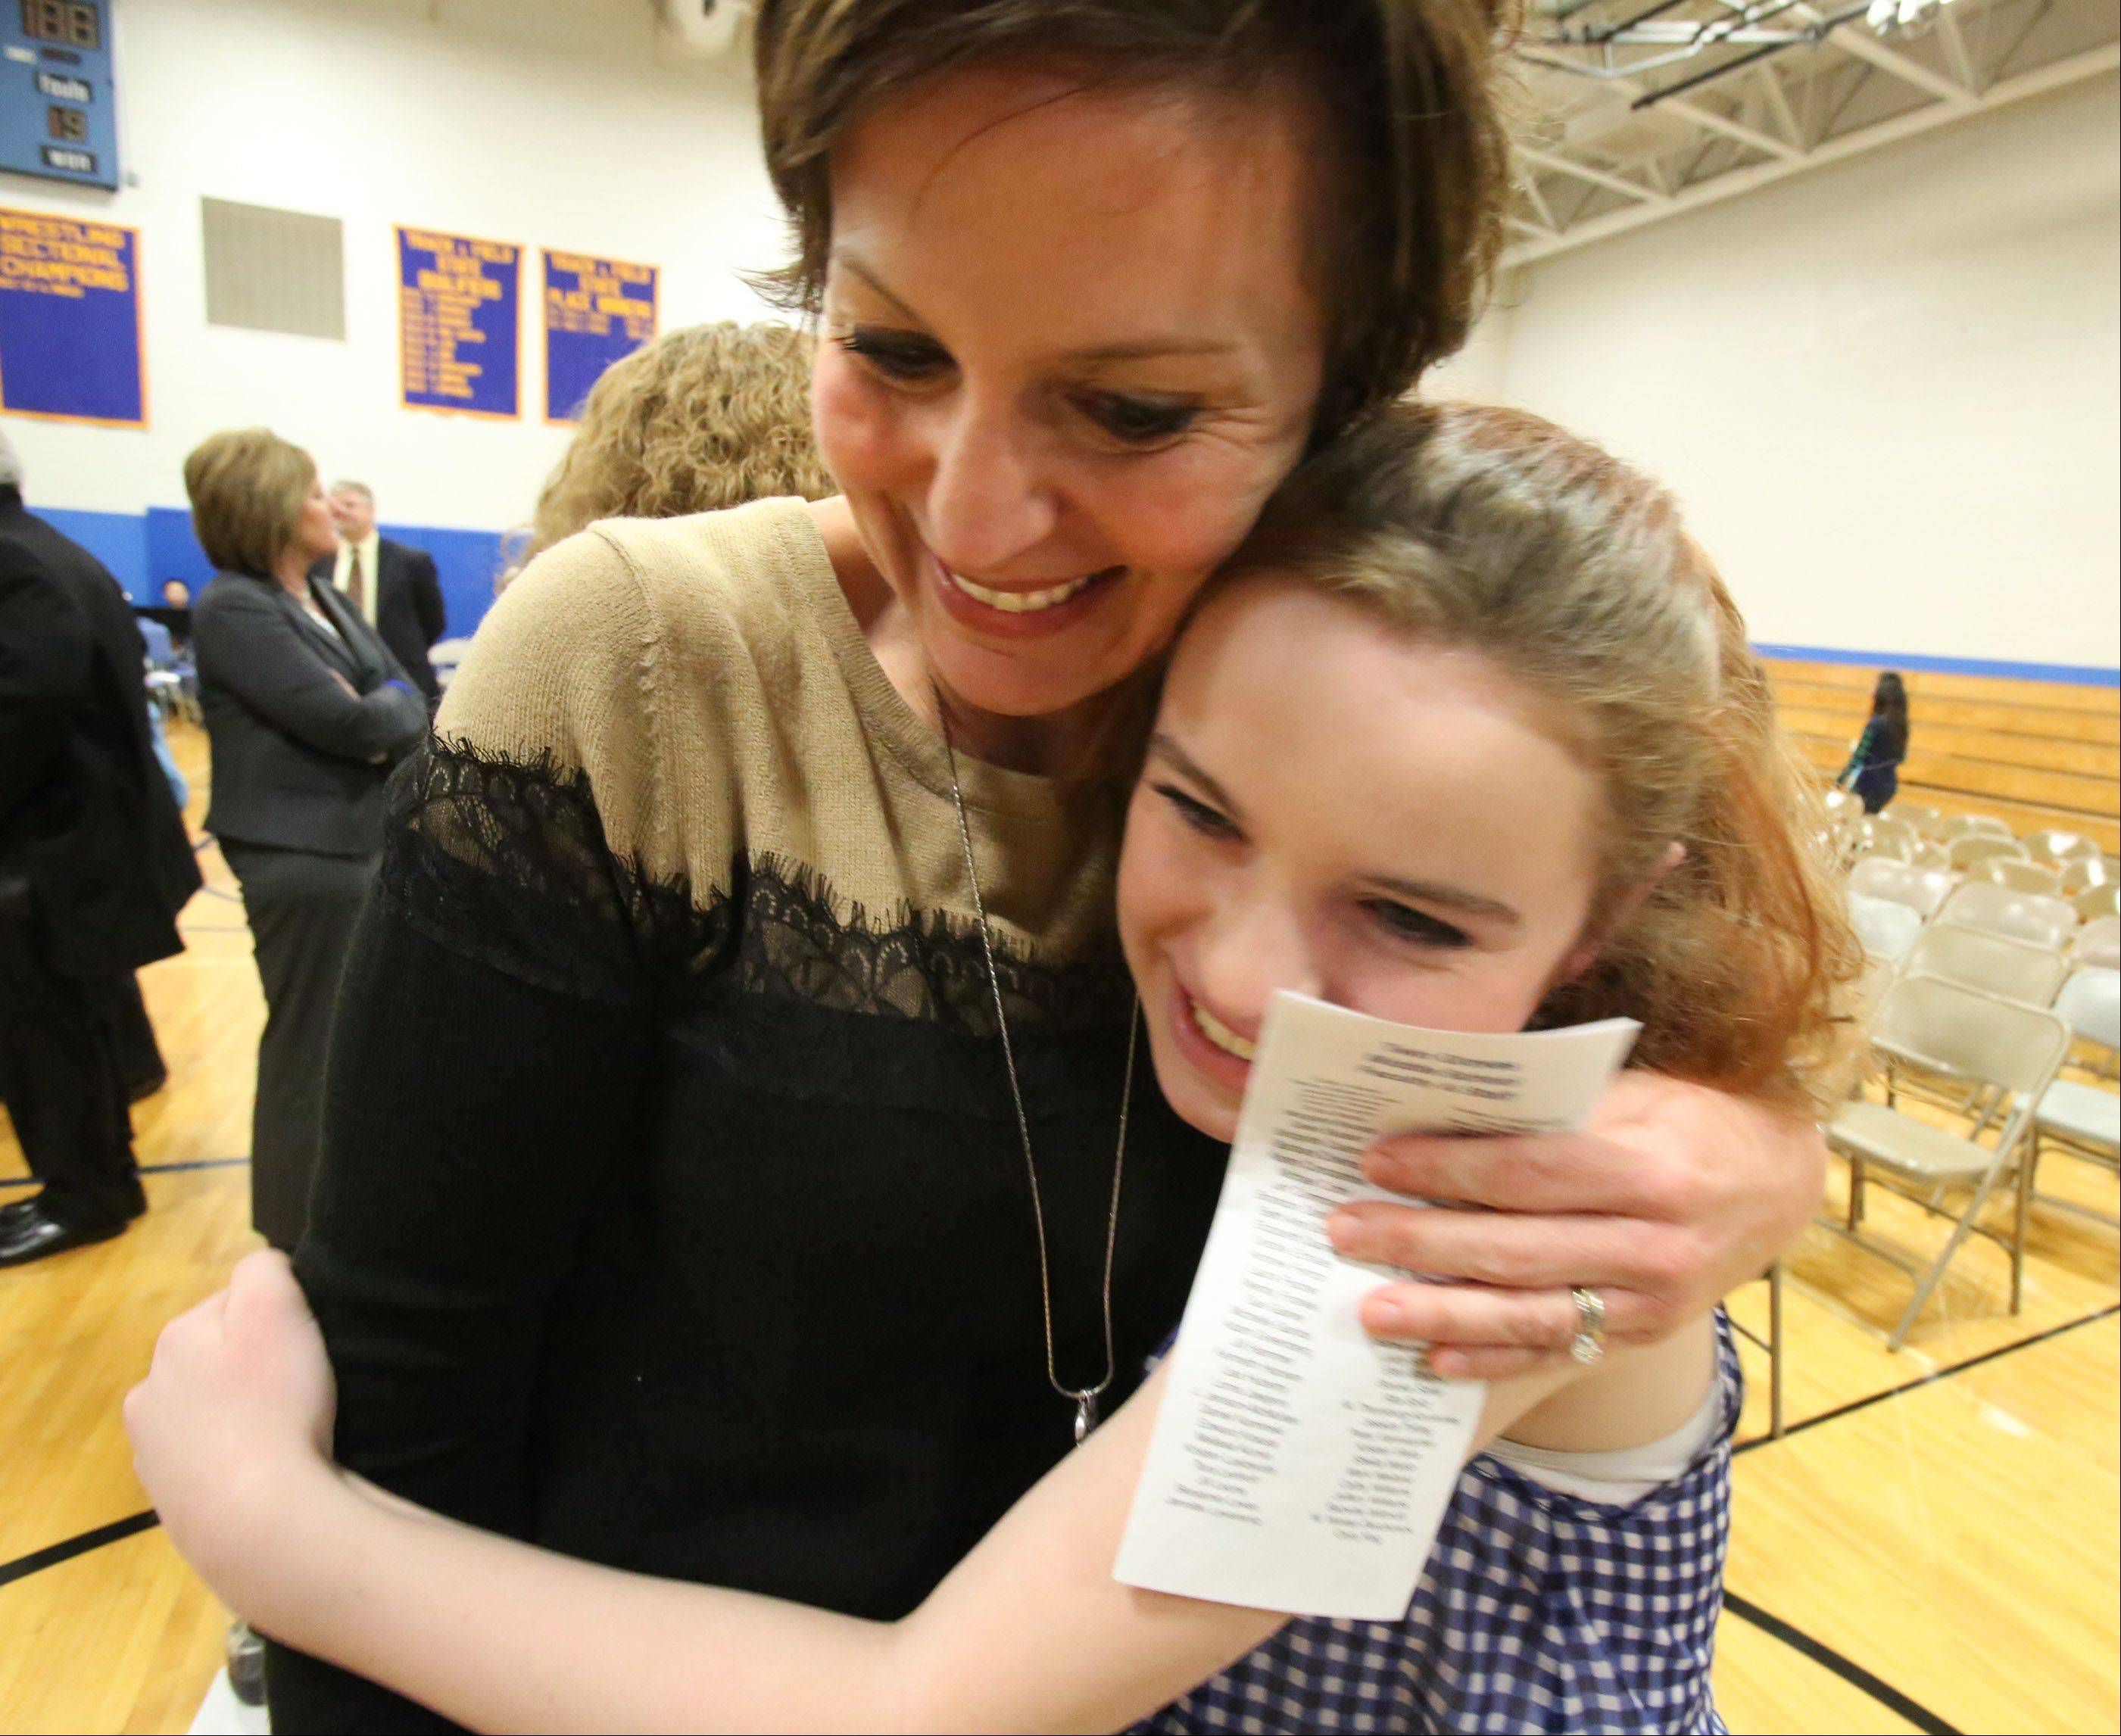 Former principal of Twin Groves Middle School, Heather Friziellie, receives a hug from sixth-grader Kira Sullivan after a program at the school celebrating the school winning a Blue Ribbon School award from the U.S. Dept. of Education on Thursday in Buffalo Grove.